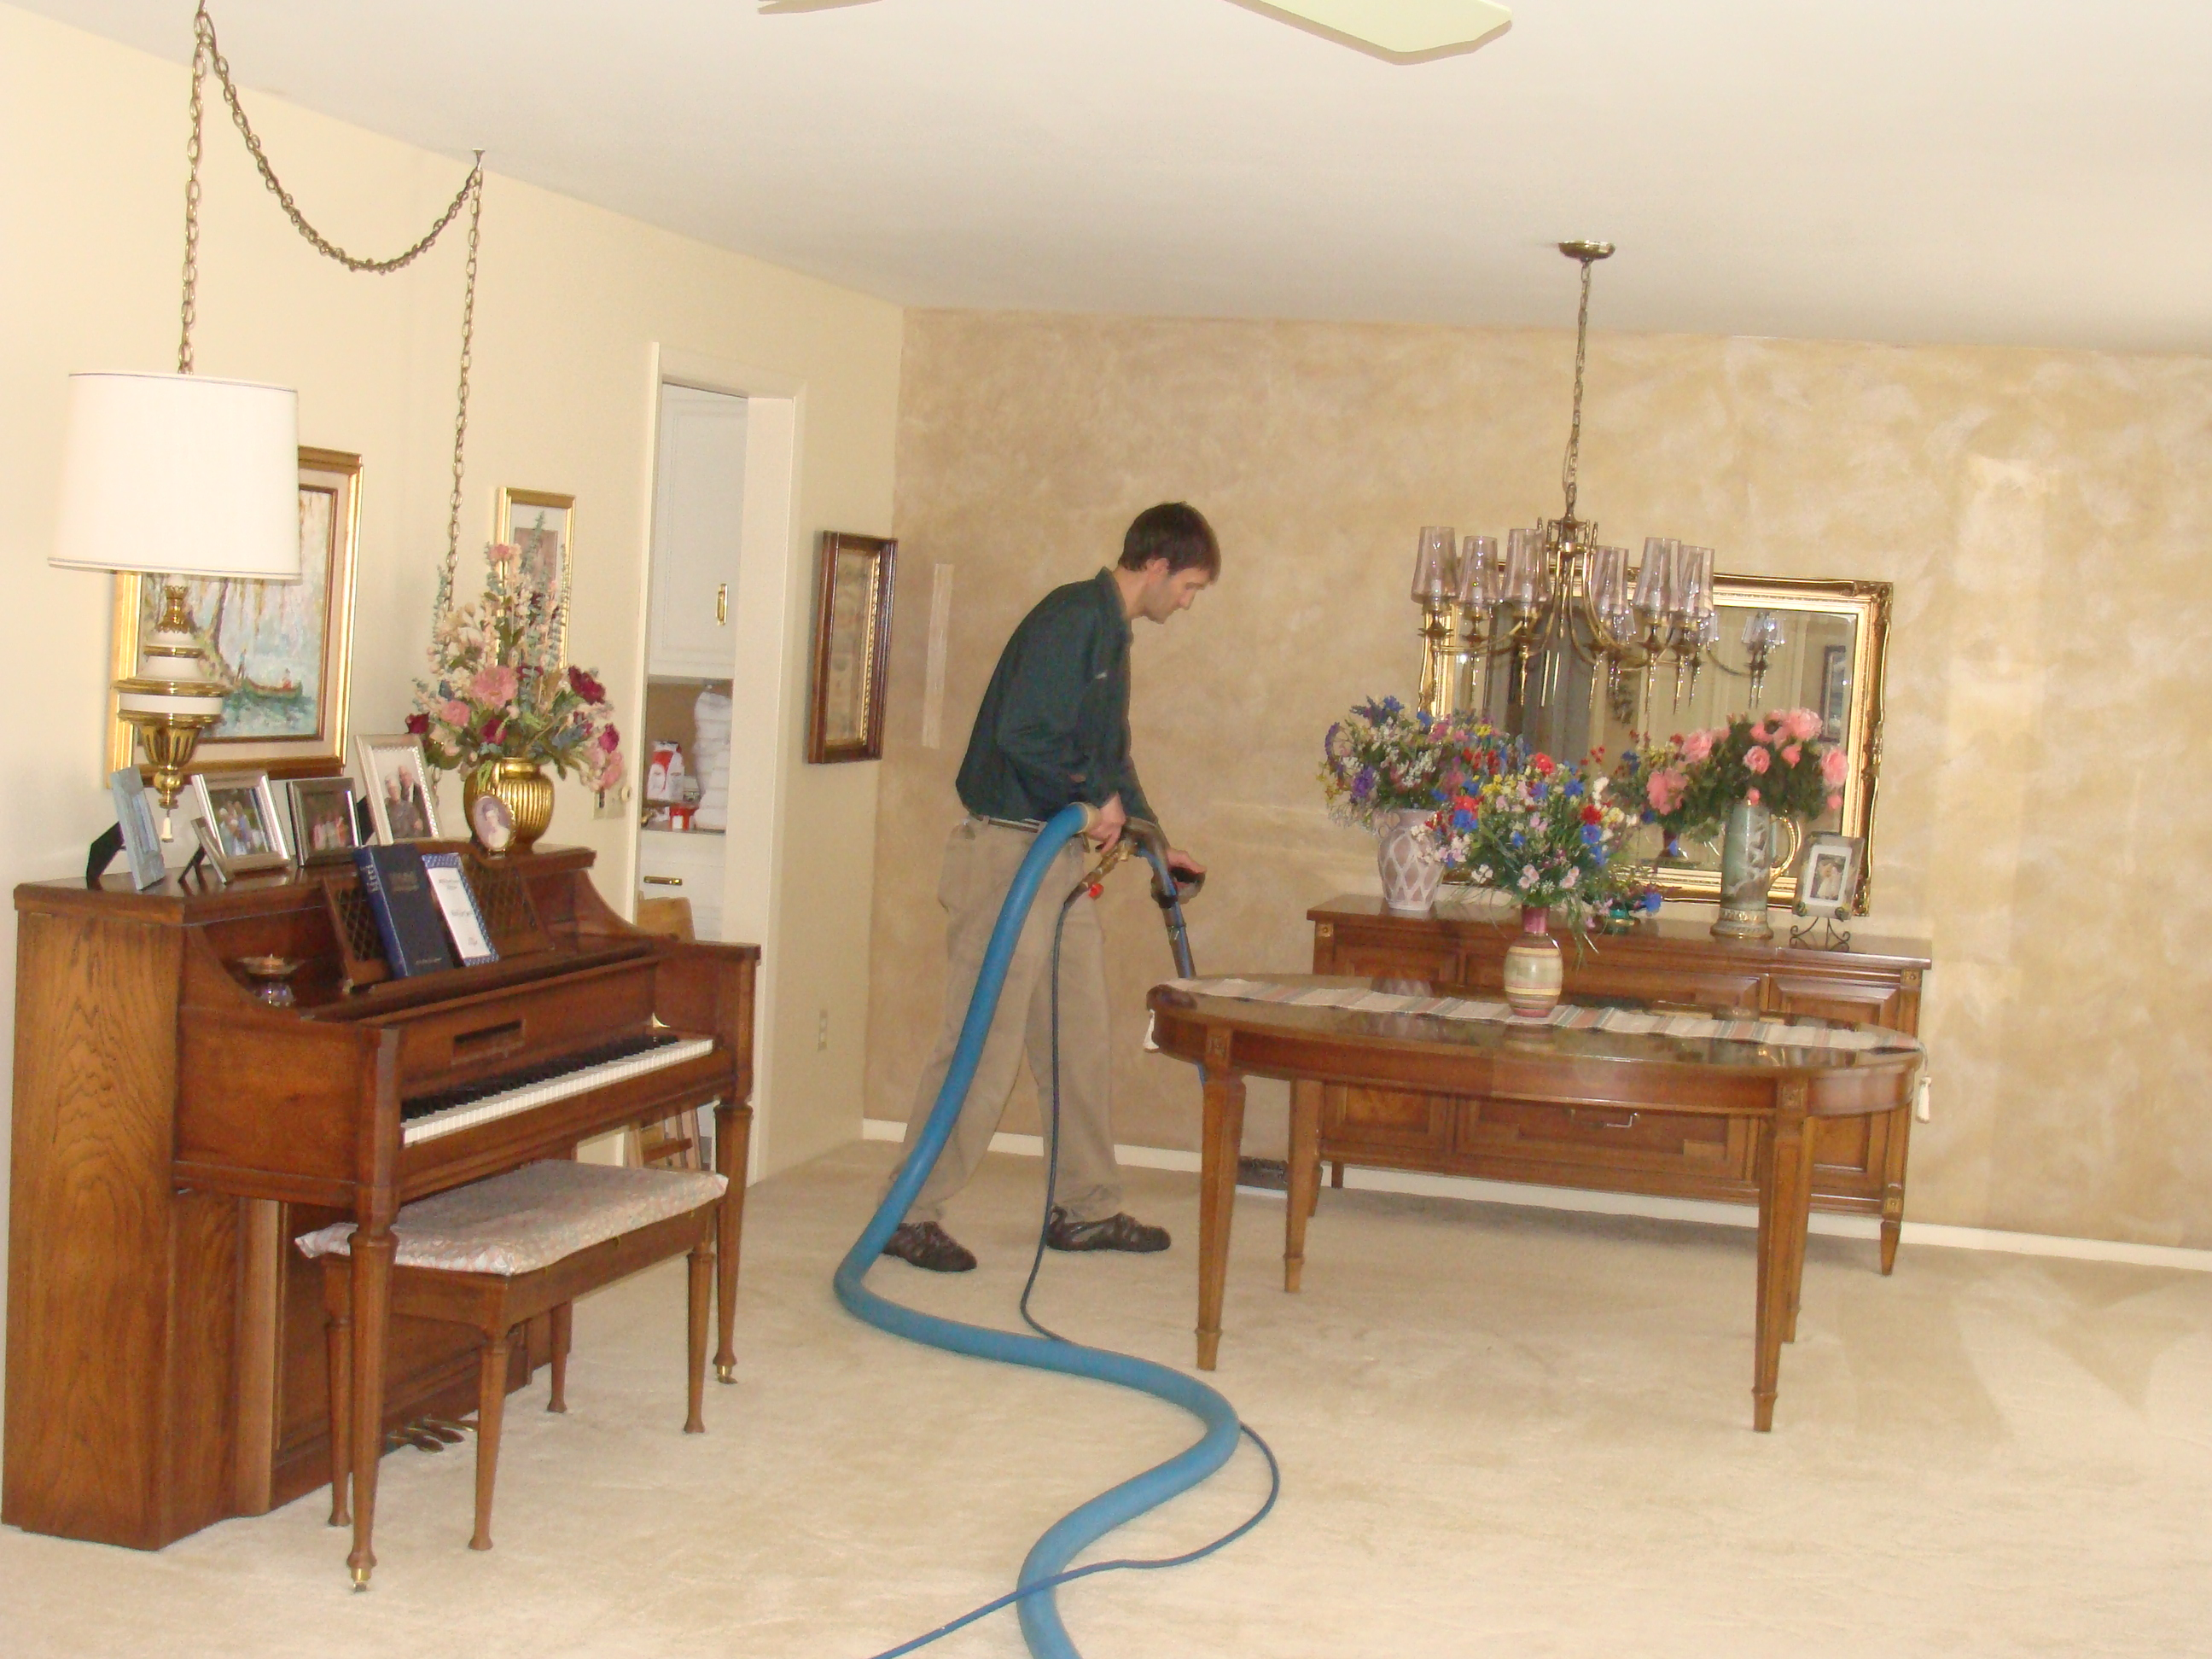 Using Corn Starch to Absorb Carpet Stains